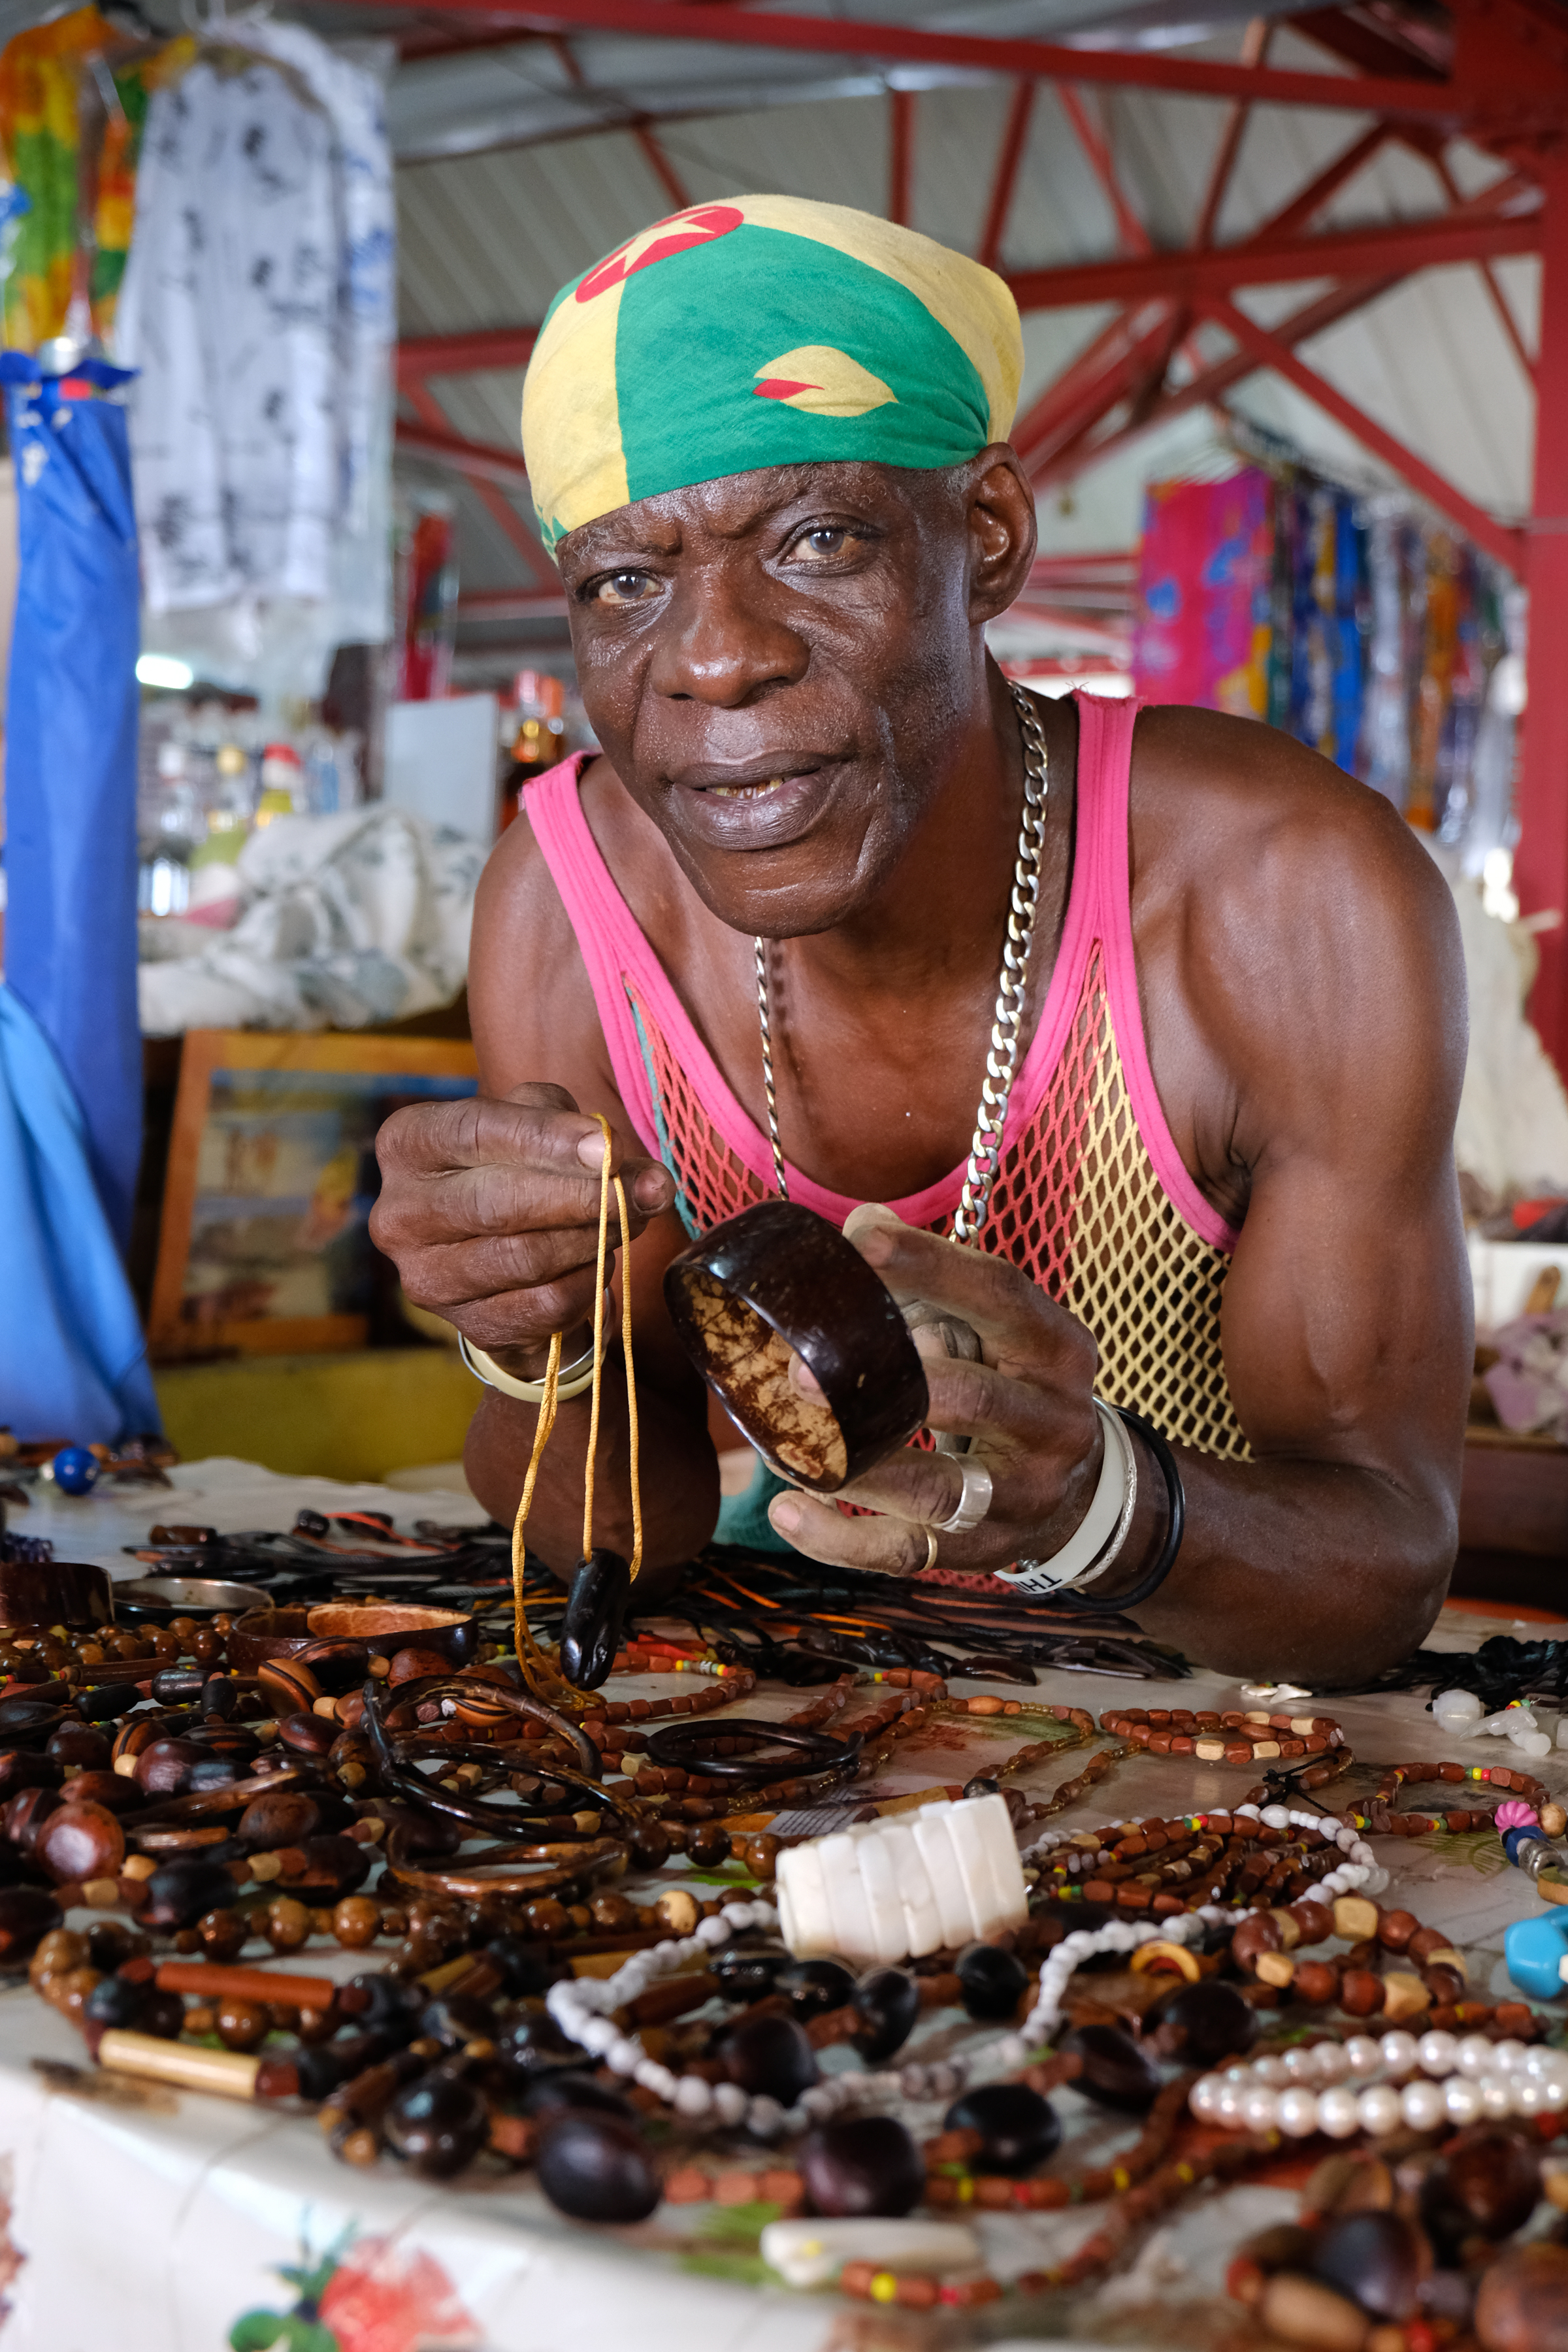 A local sells his own hand-made jewellery in the market (Stephen Patterson/PA)